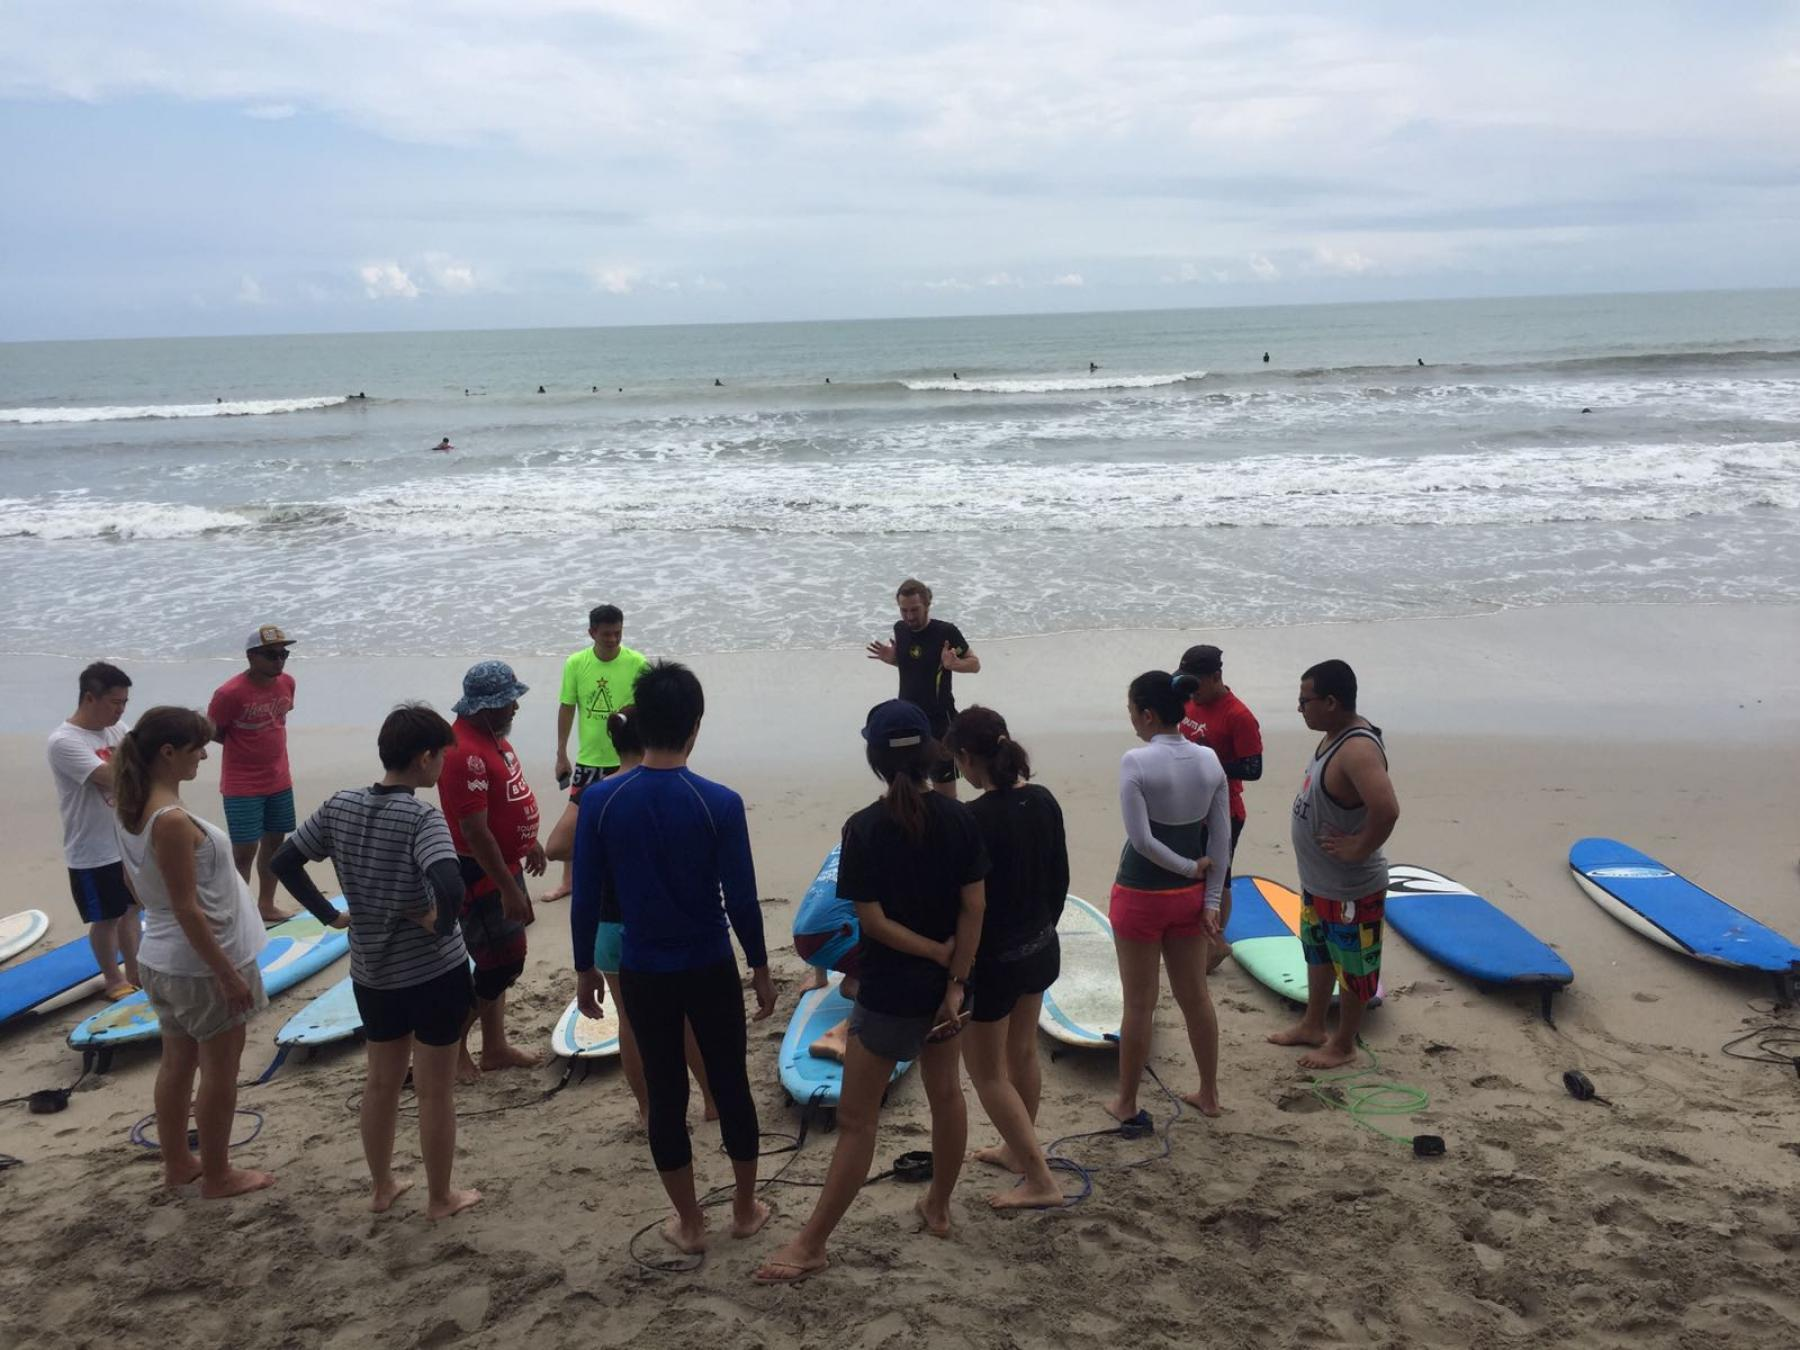 Let's learn surfing for a day (beginners welcome) - Jan 21 starting at Tanjung Sedeli Johor Malaysia